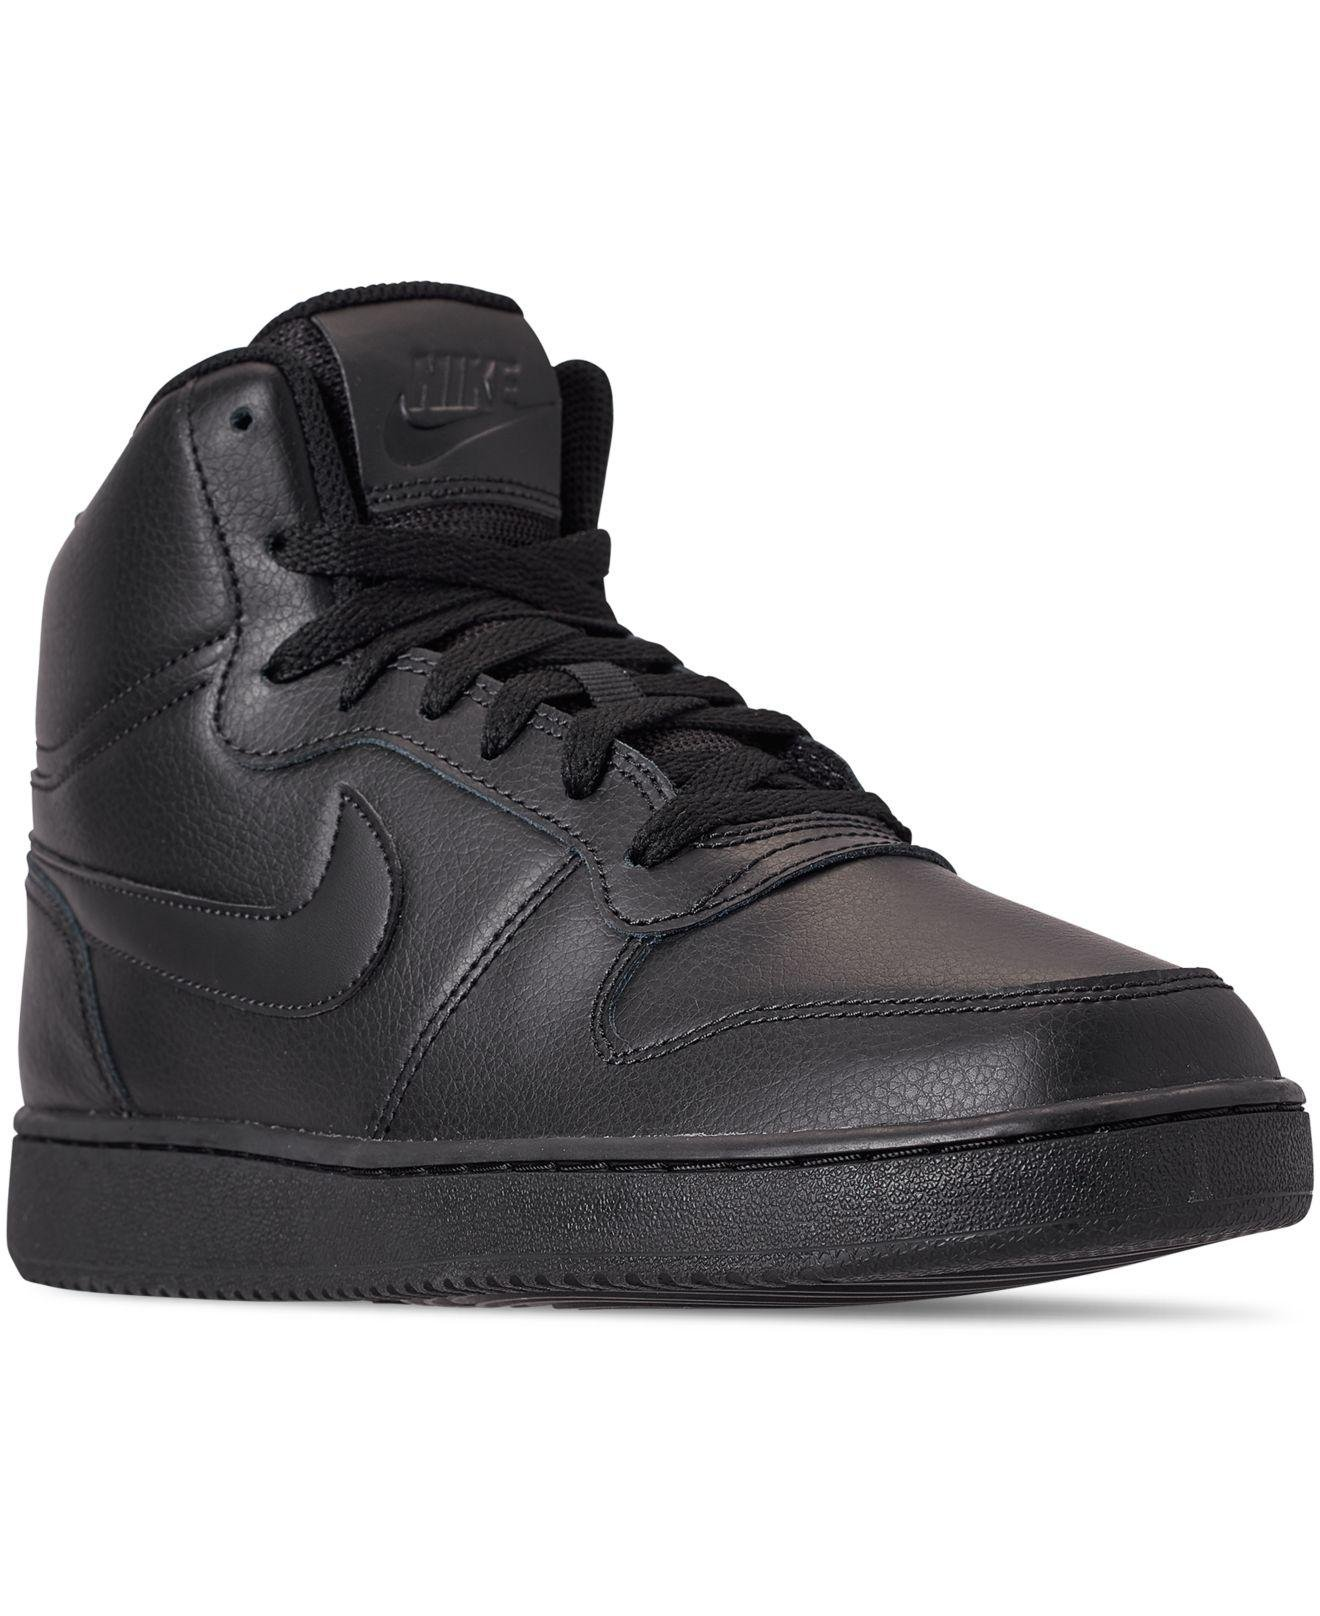 4b66c689f2 Lyst - Nike Ebernon Mid Casual Sneakers From Finish Line in Black ...